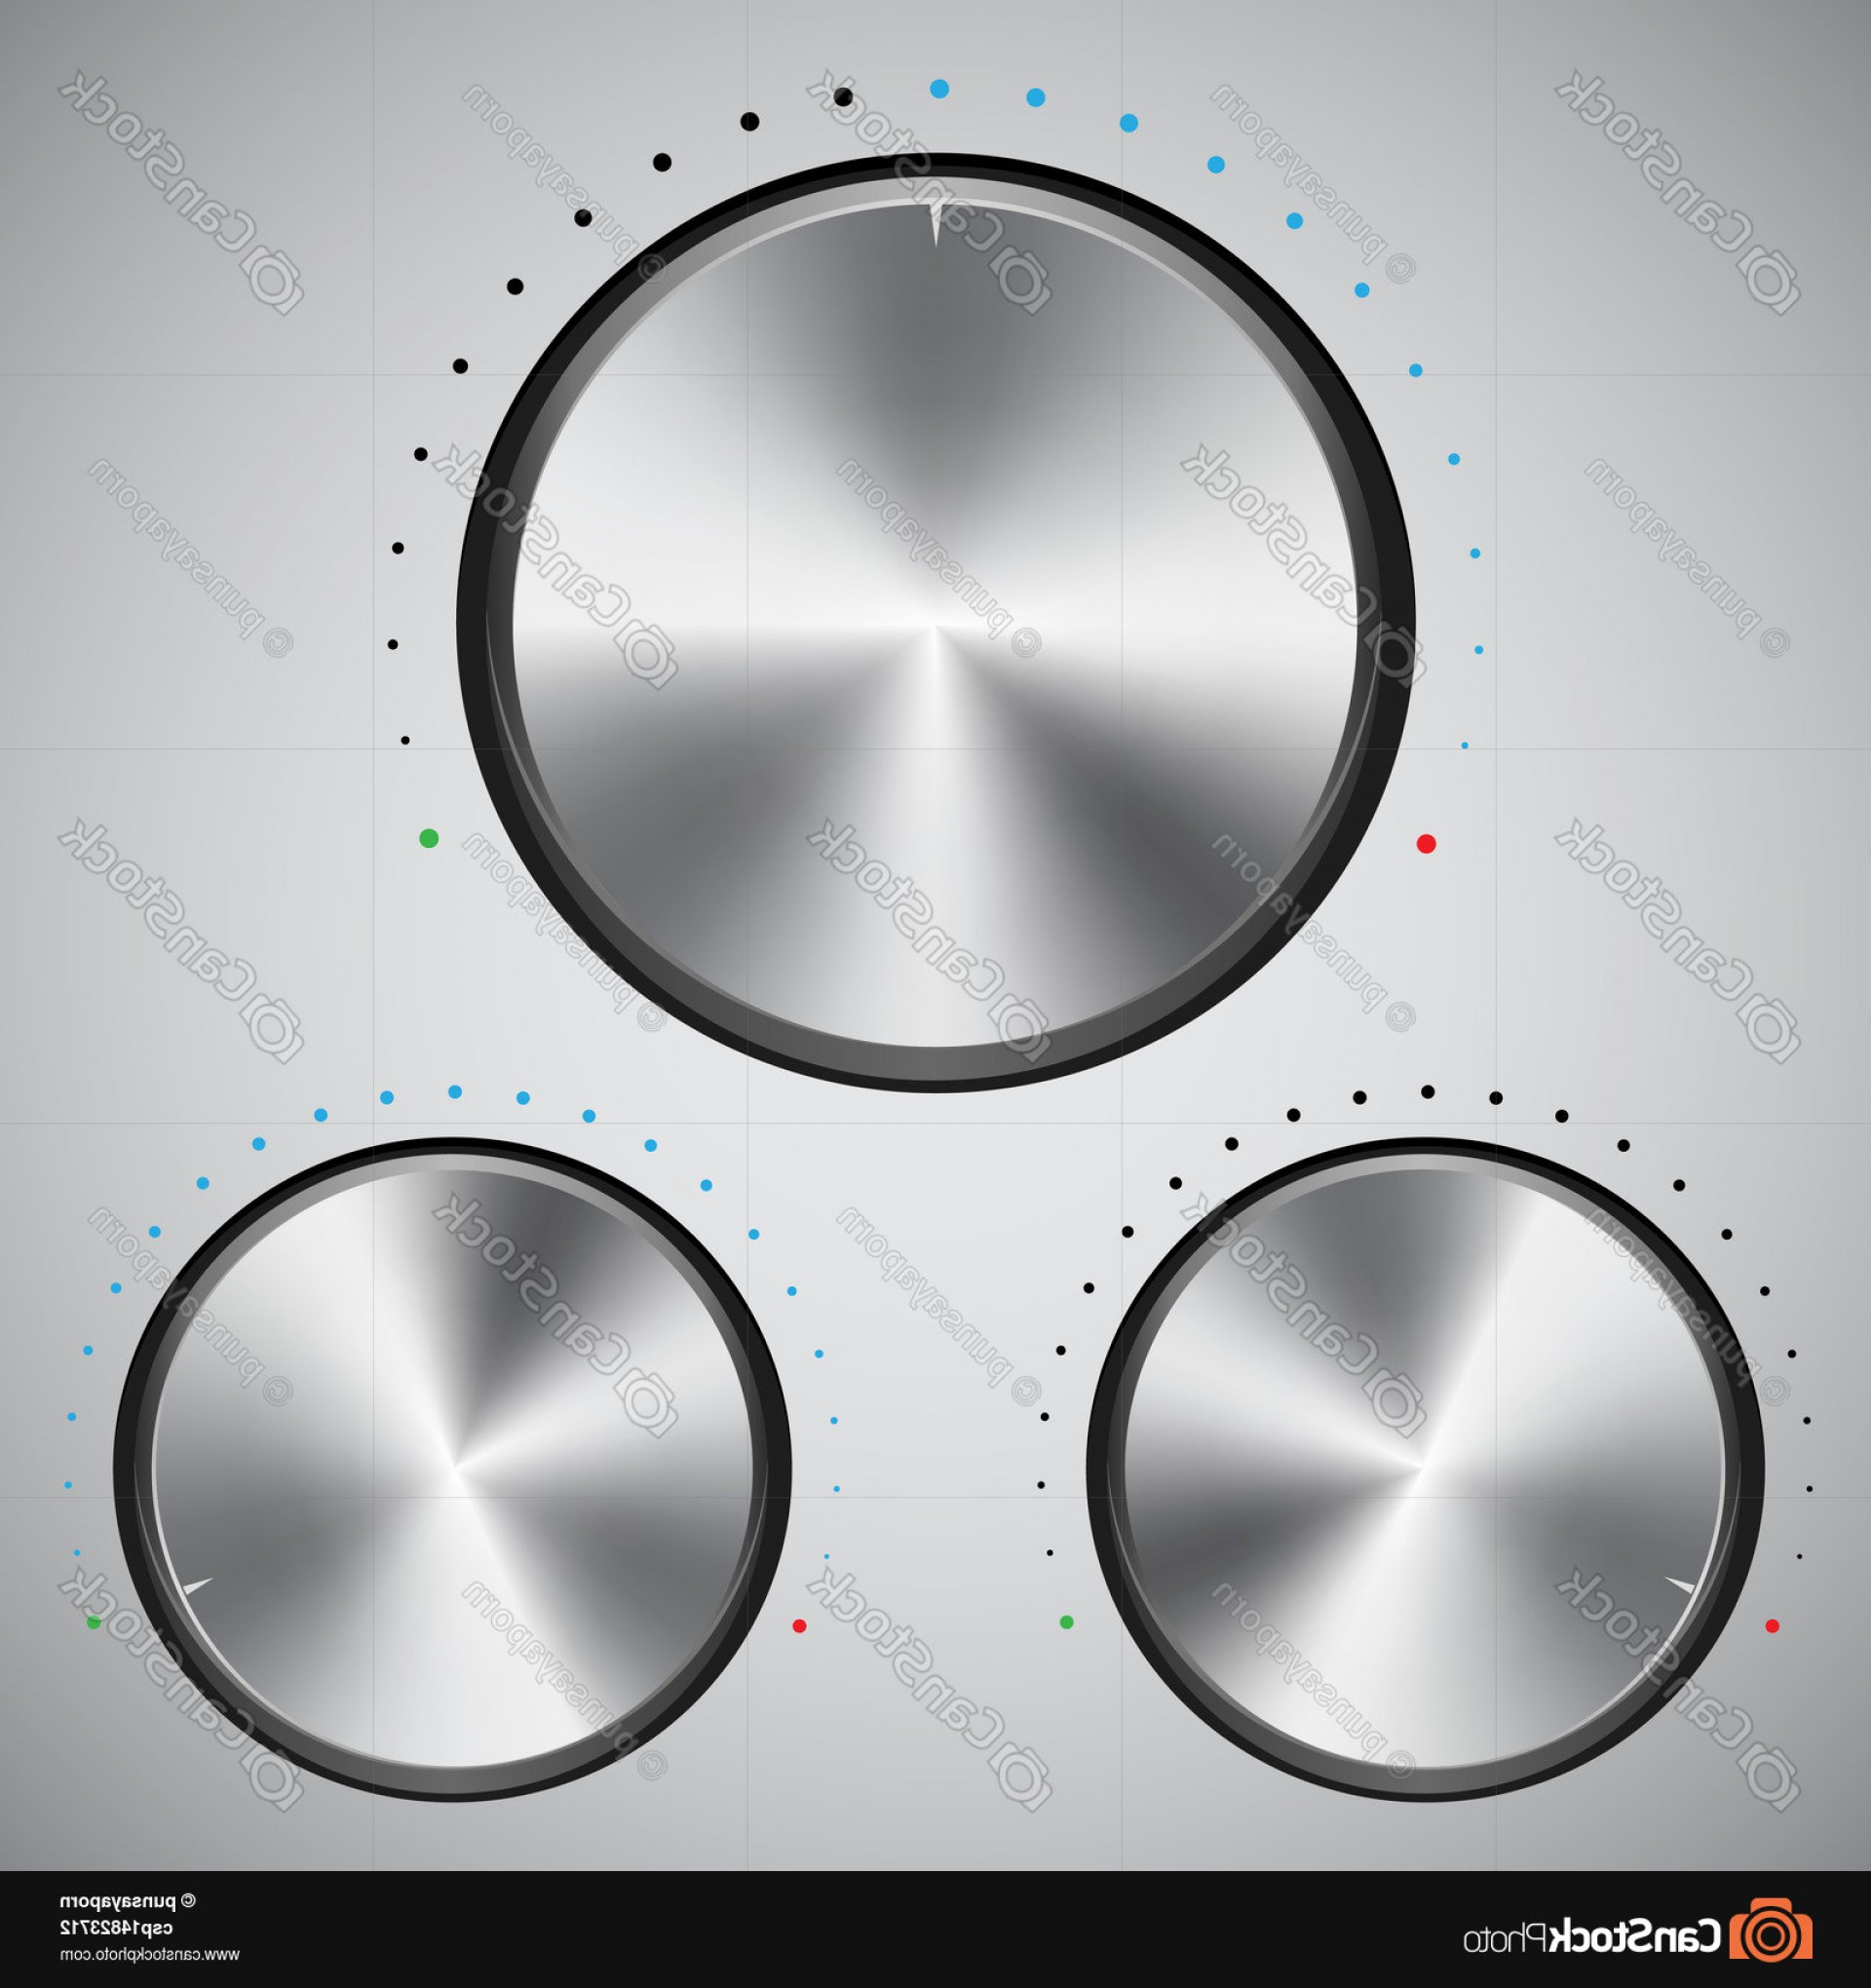 Volume Button Vector: Volume Button With Metal Texture